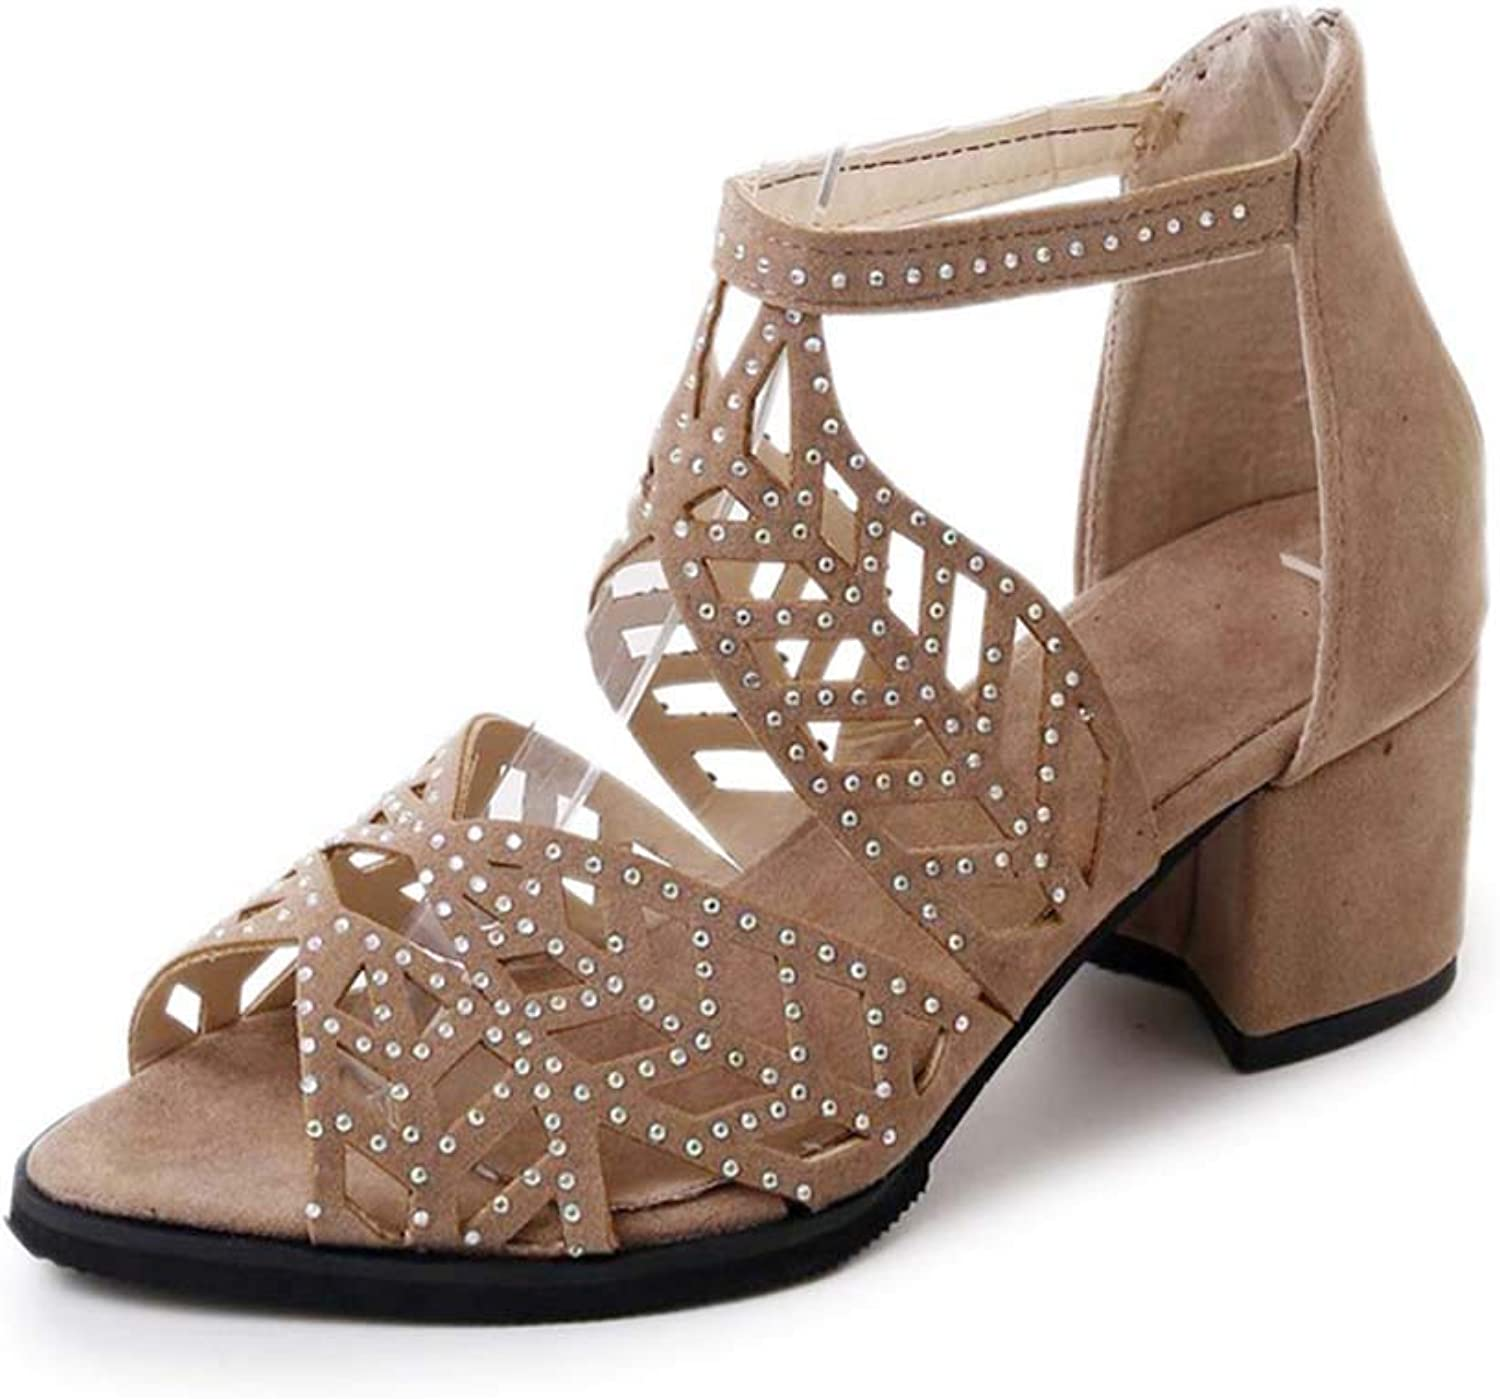 Women's Sandals Suede Open Toe Hollow Sandals mid Heel Rhinestones Decorative Fashion Single shoes Spring and Summer New